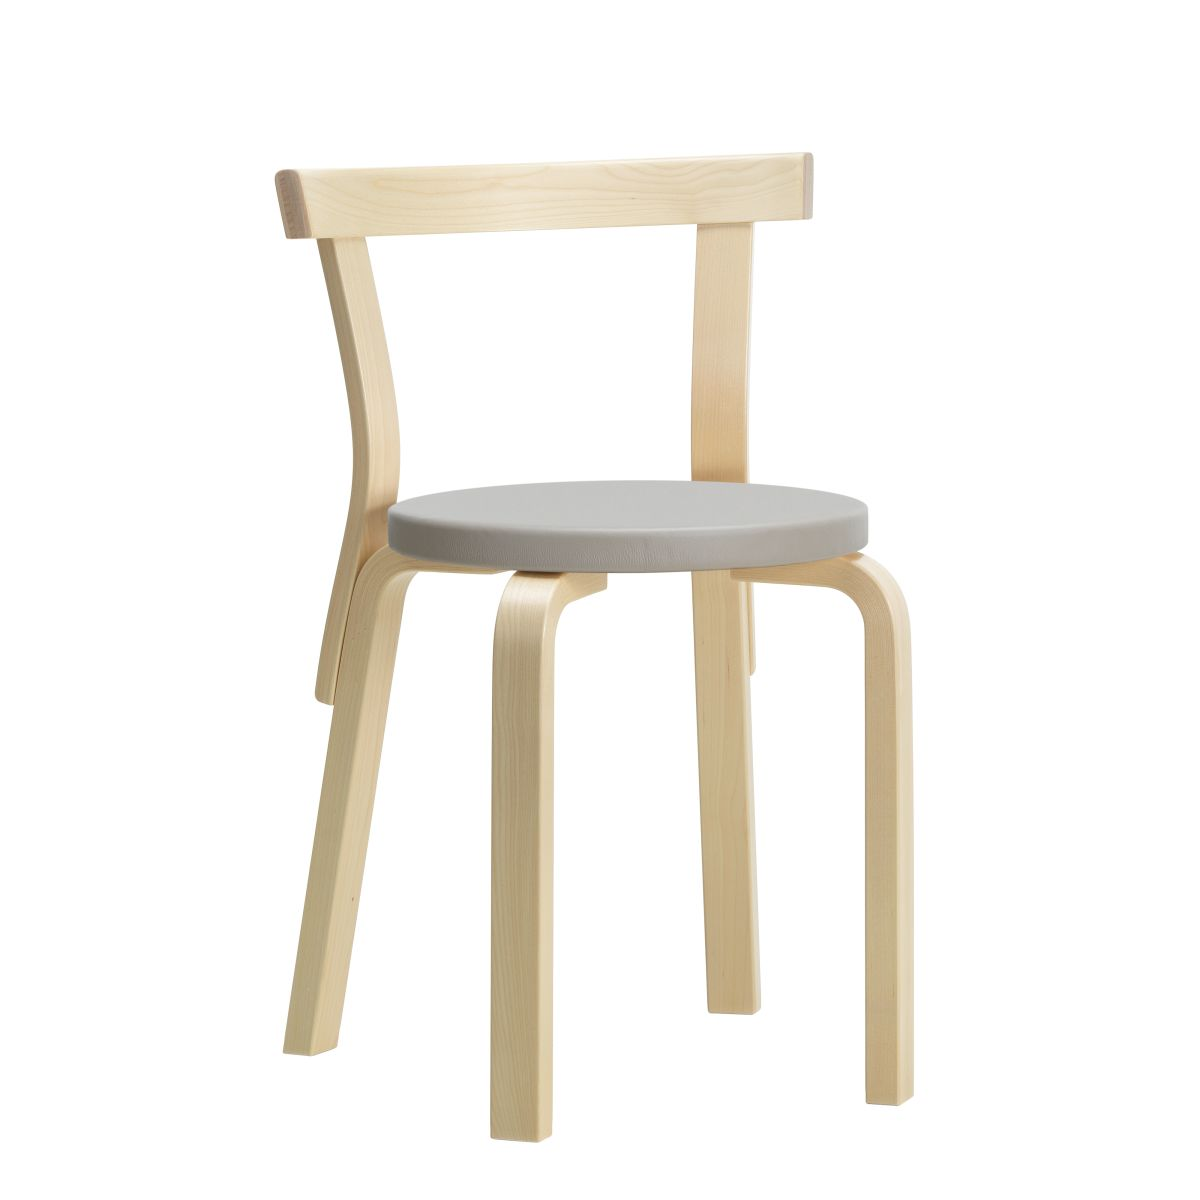 Chair-68-birch-natural-lacquered-seat-leather-upholstery_F-2912697